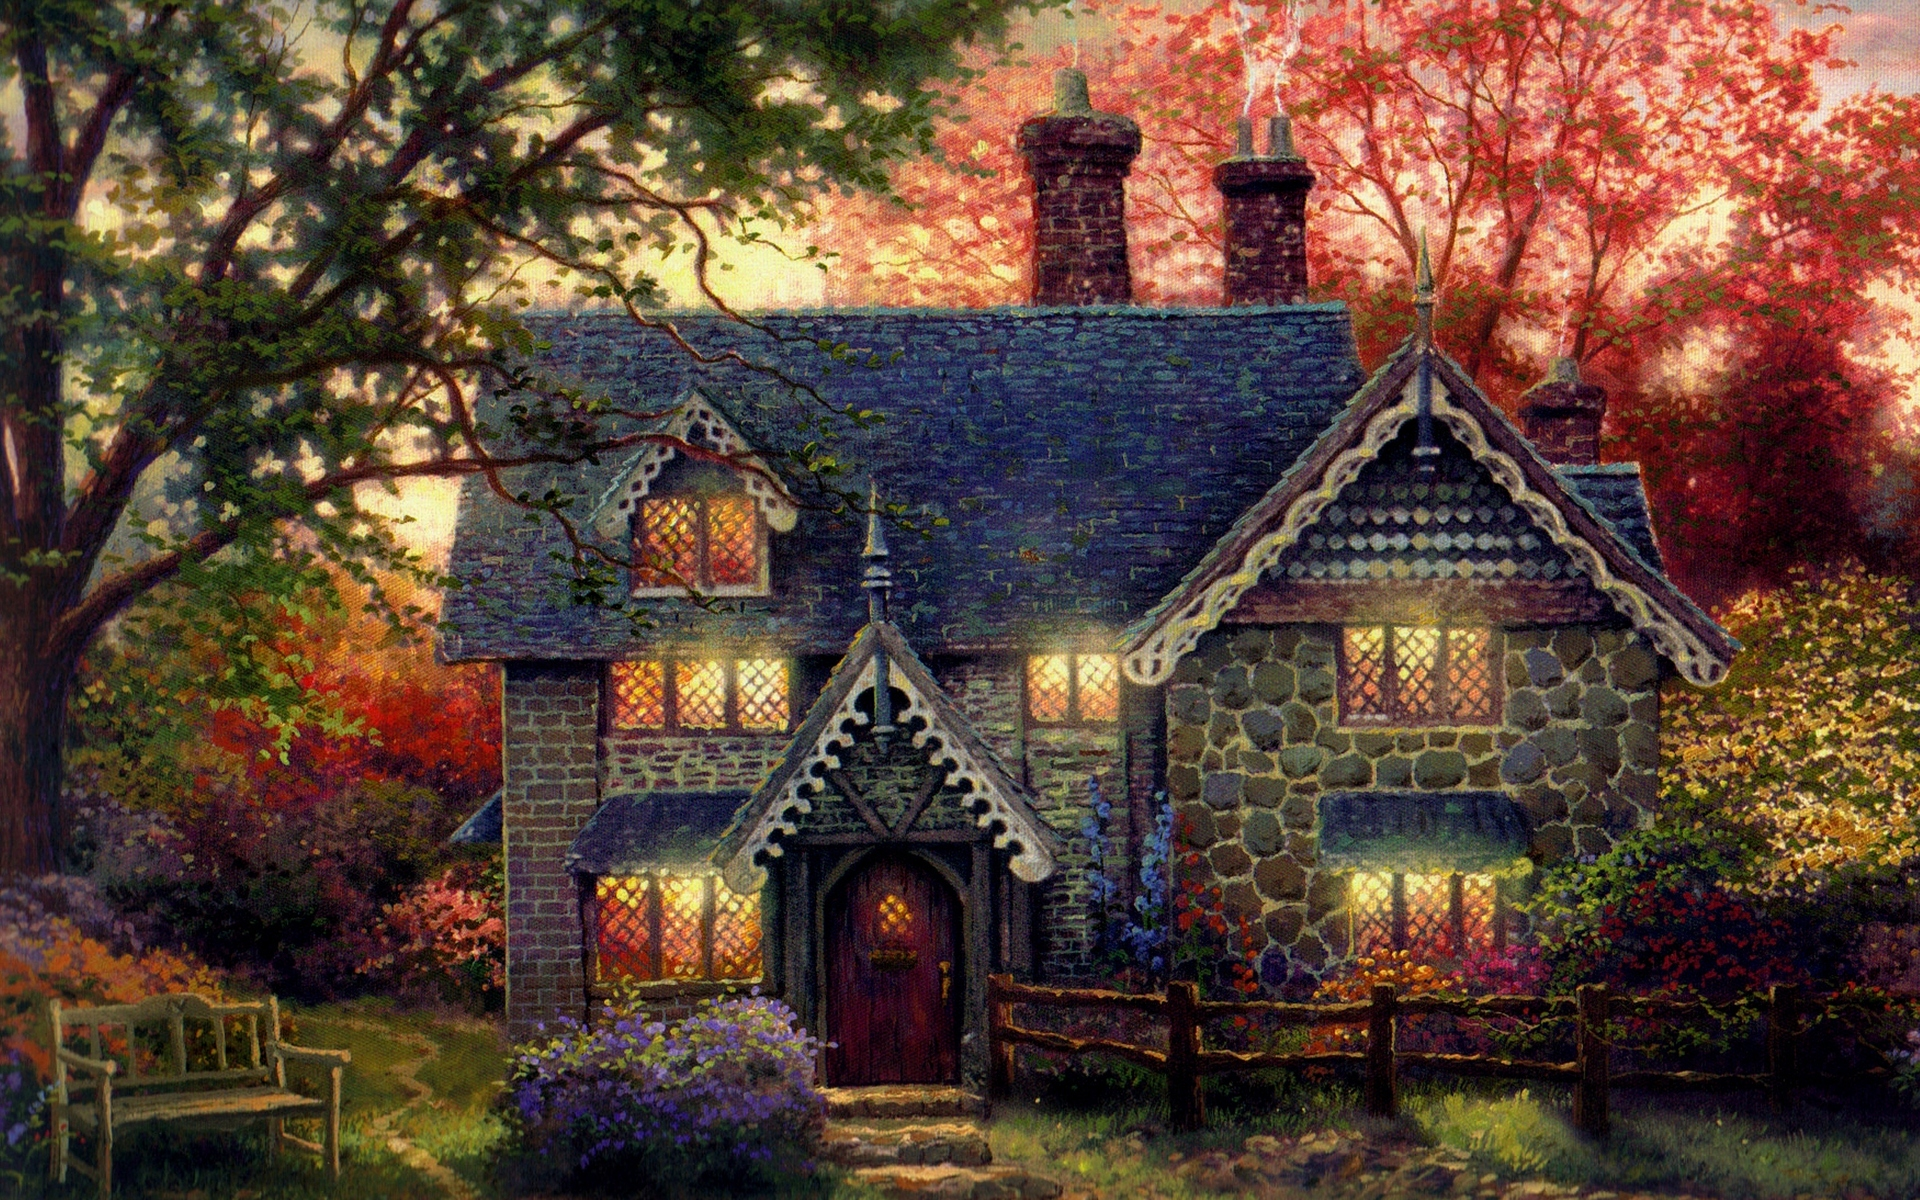 Thomas Kinkade Wallpapers « Awesome Wallpapers Ubuntu Wallpaper 1920x1080